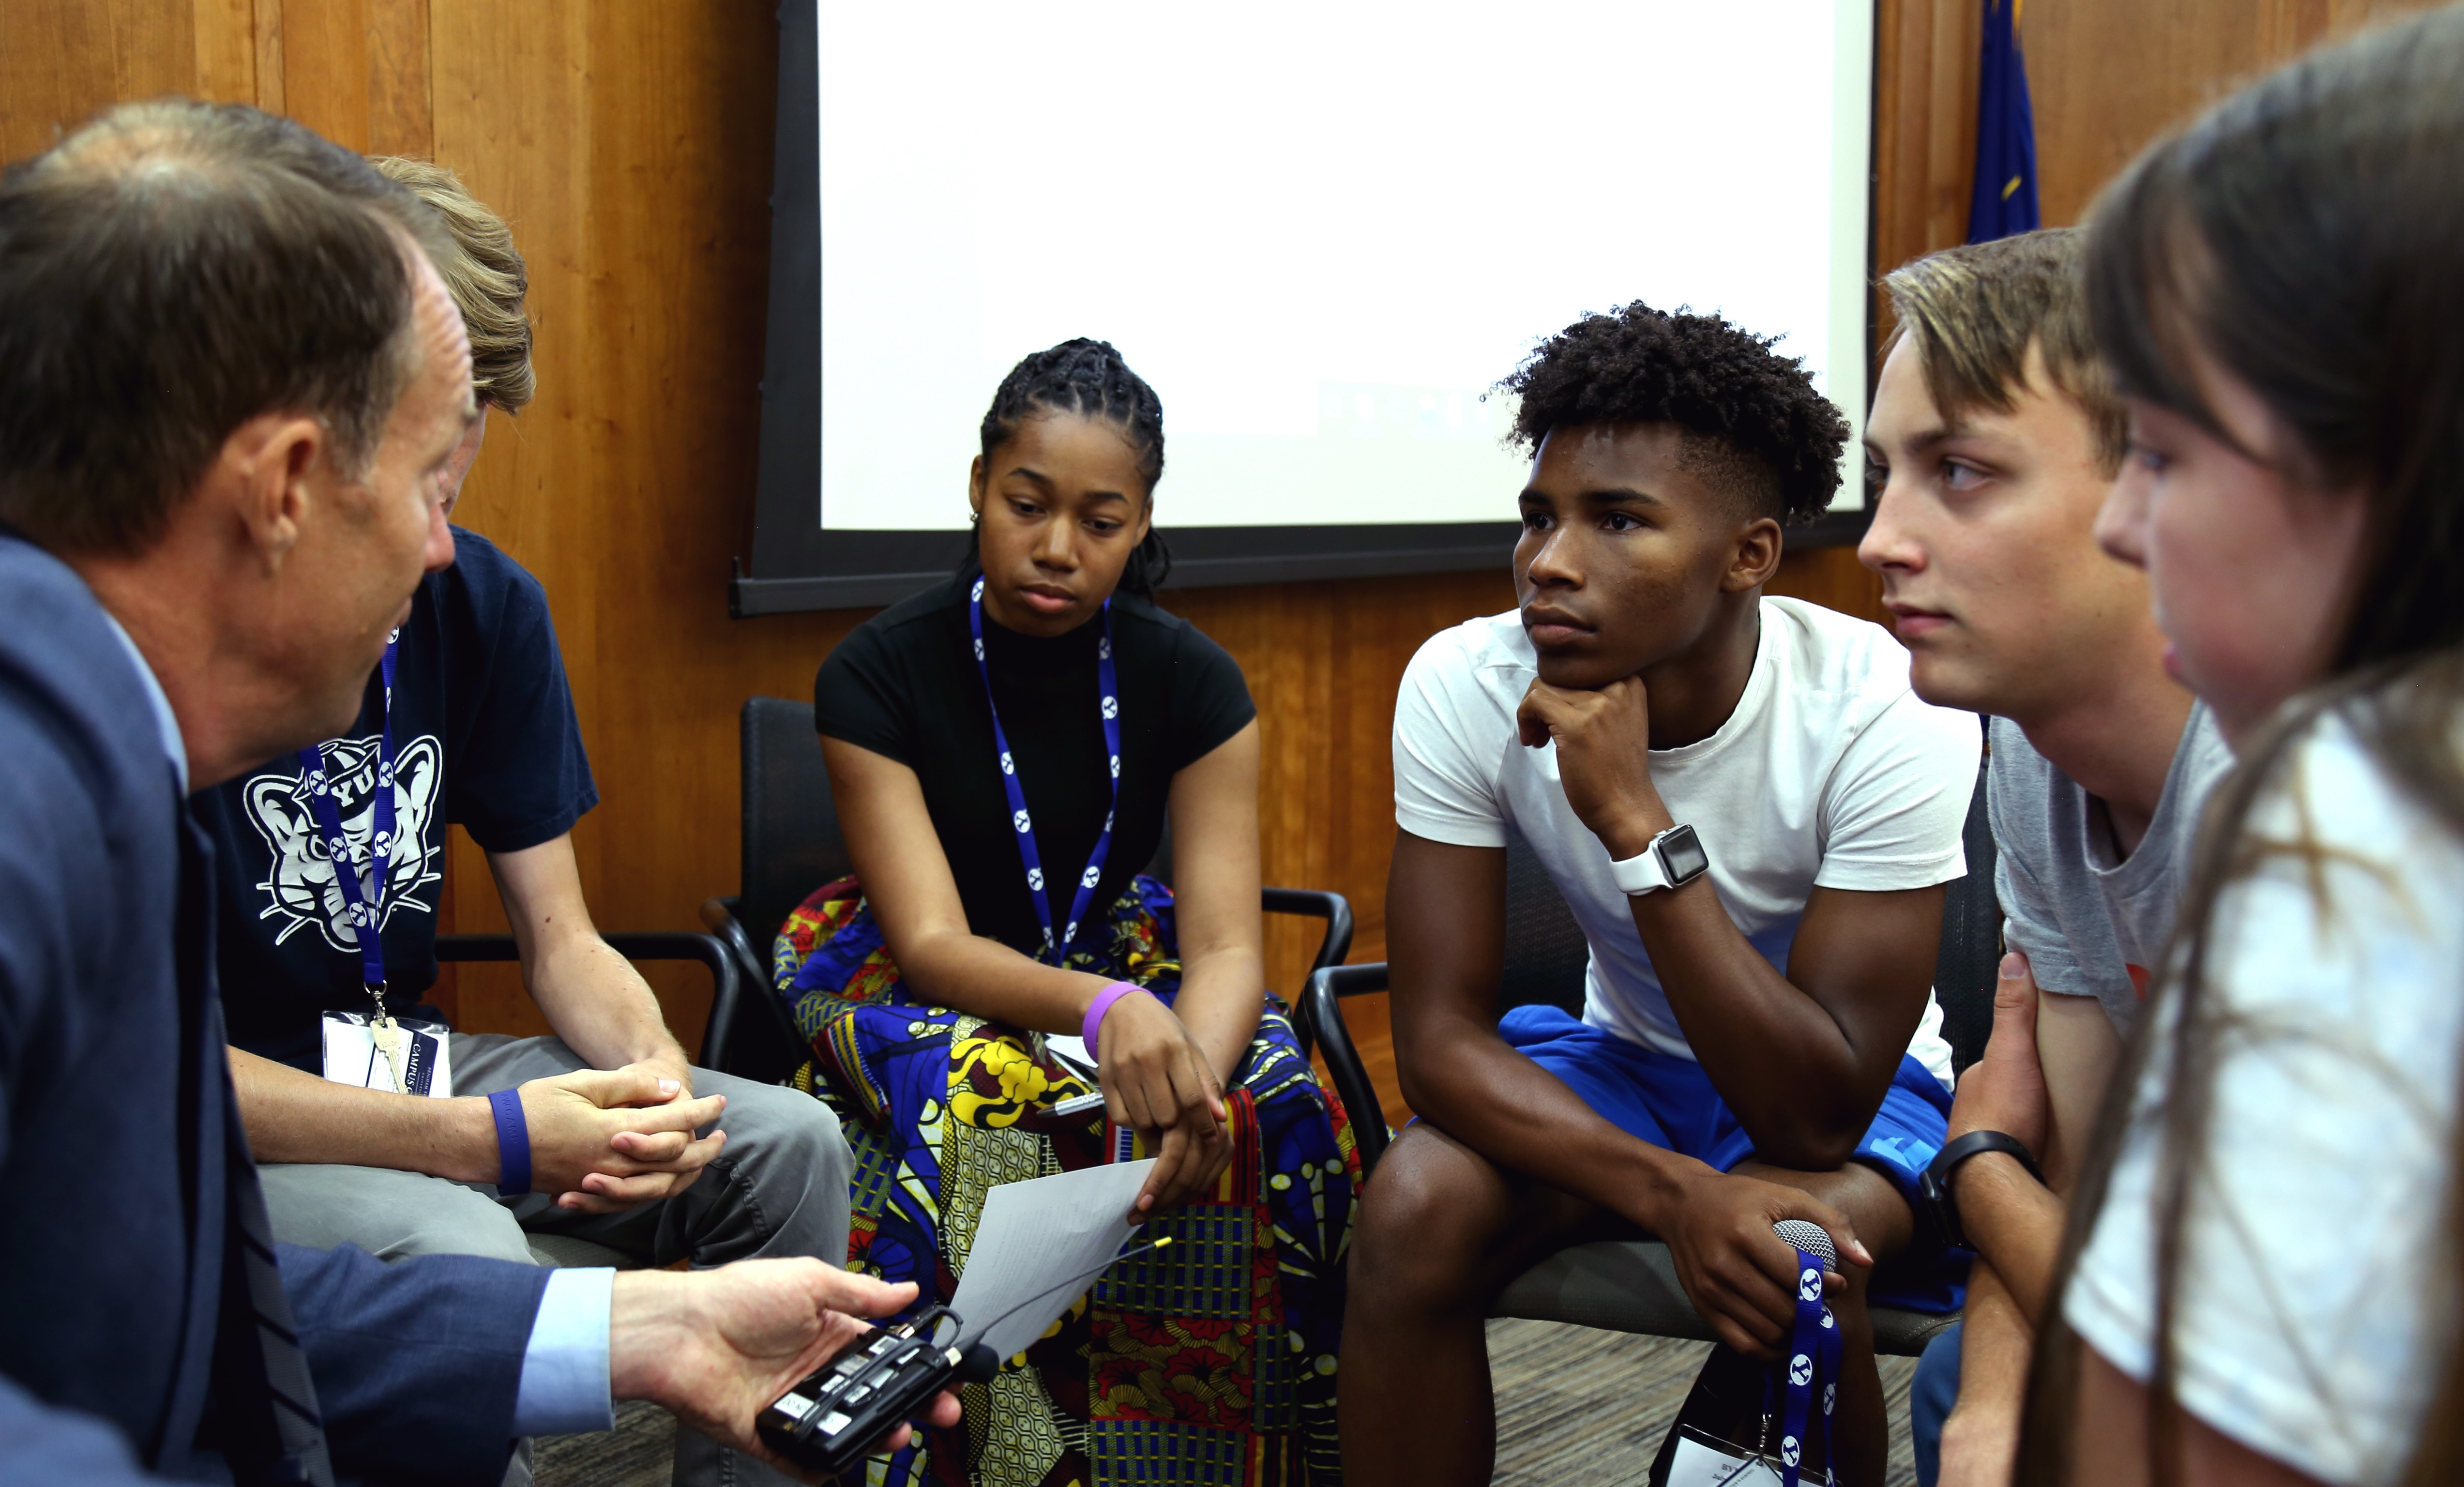 Participants of the 2019 BYU Law Camp take part in a group discussion. The annual camp offers young people opportunities to discuss and better understand the legal issues of the day.